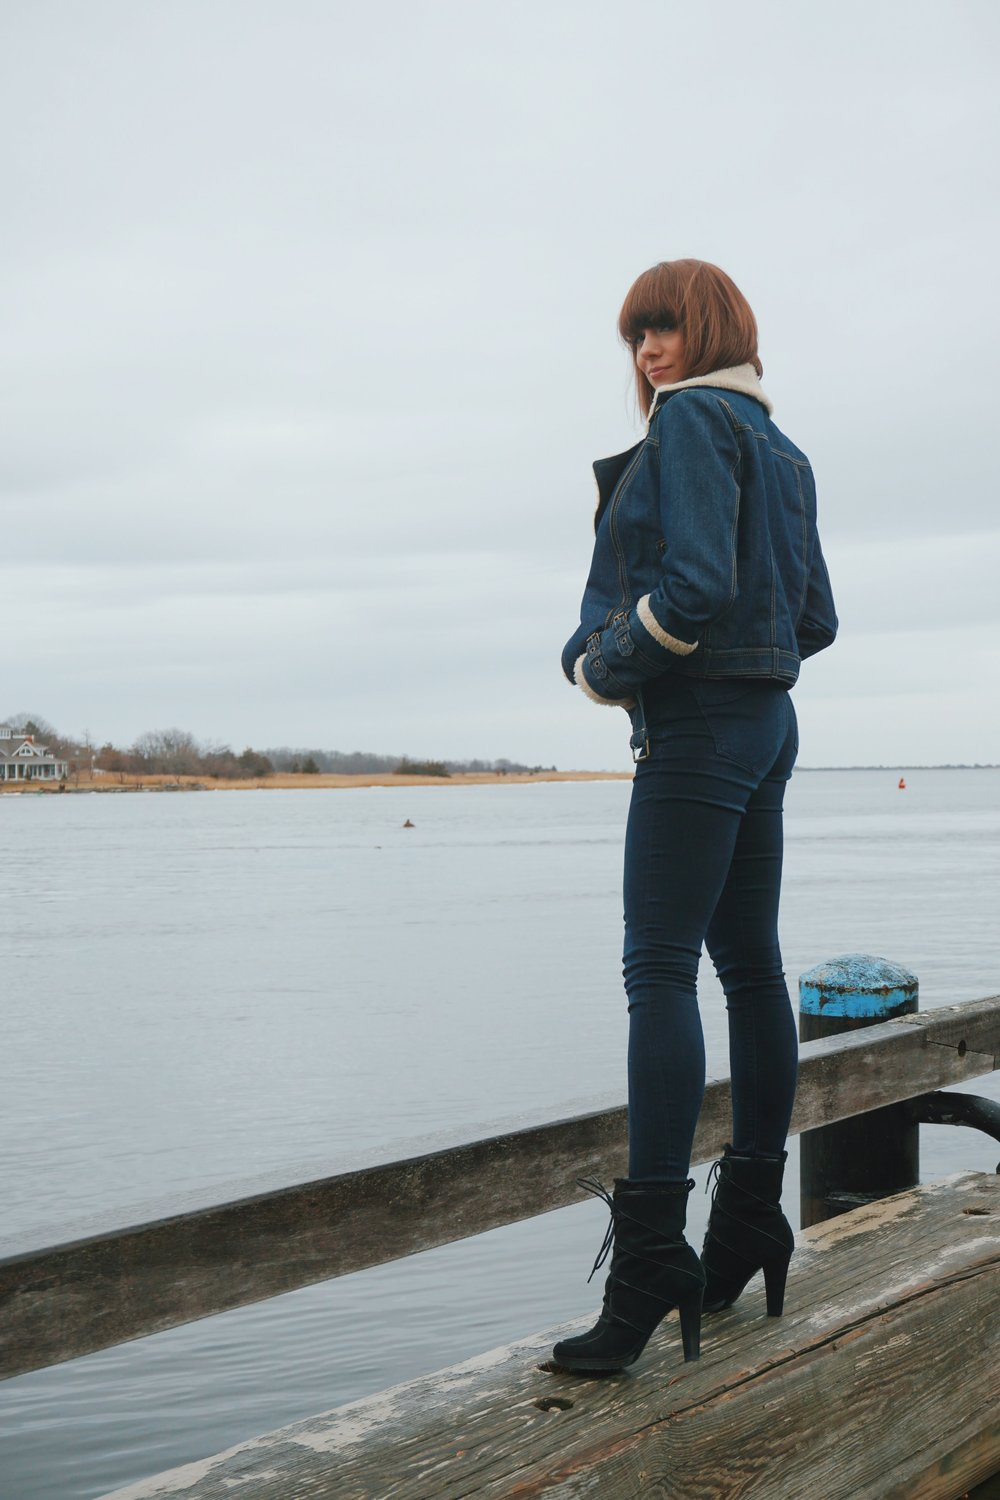 A blogger looking back at the camera, wearing expess jeans, winter denim jacket, and black high heel boots.